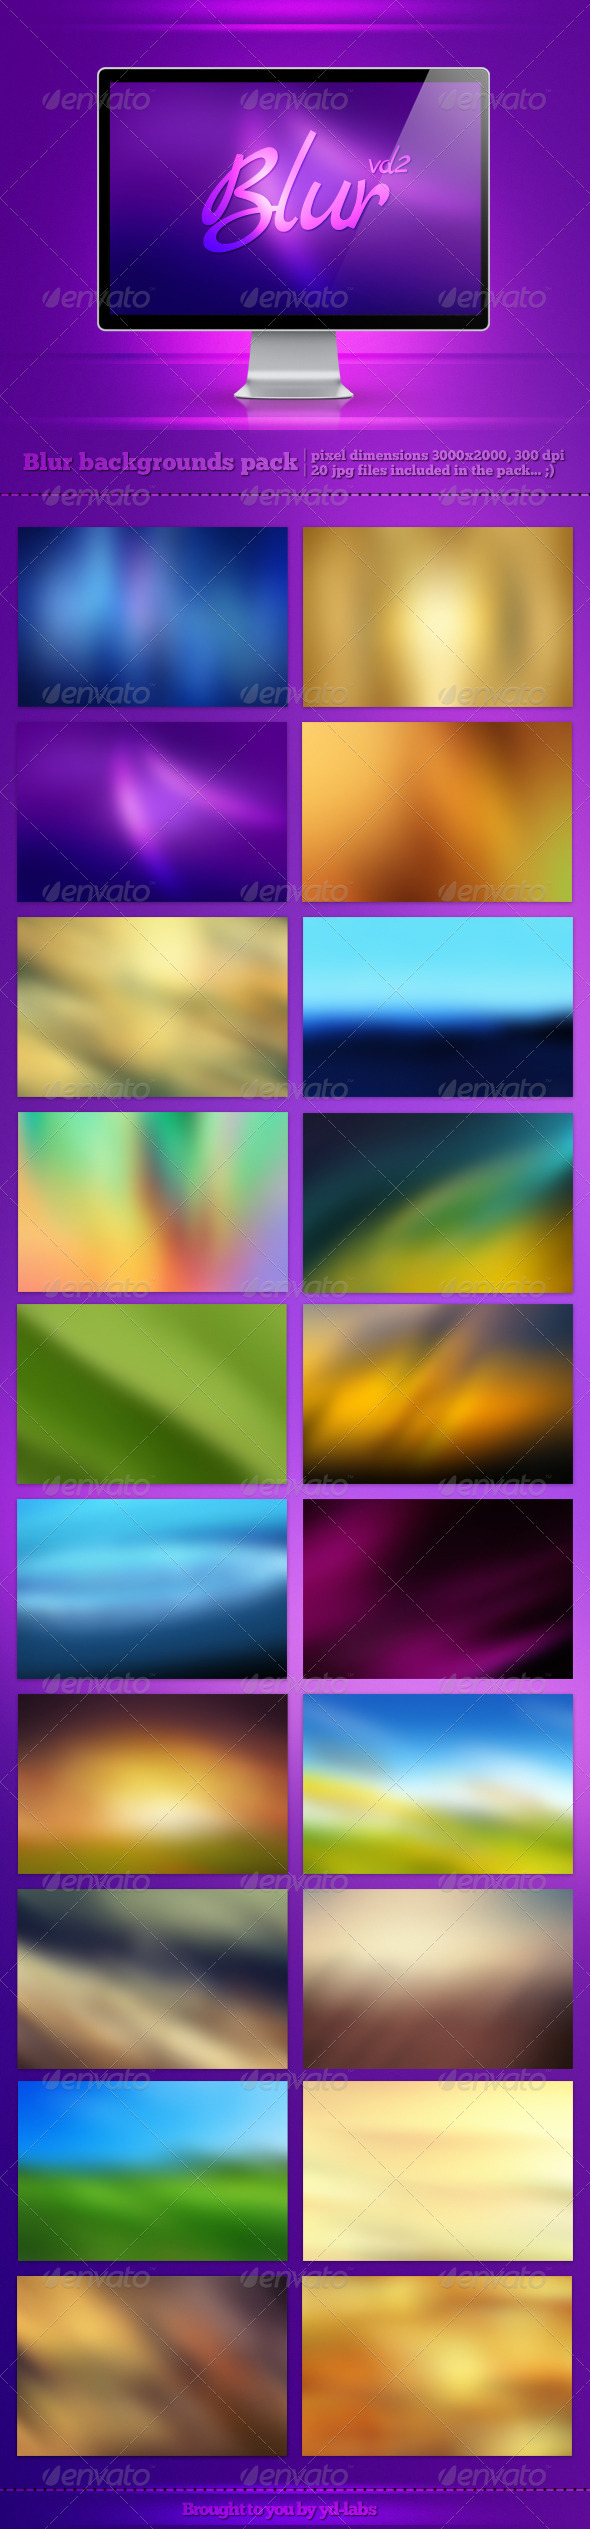 GraphicRiver Blur Backgrounds Pack 2 3014549